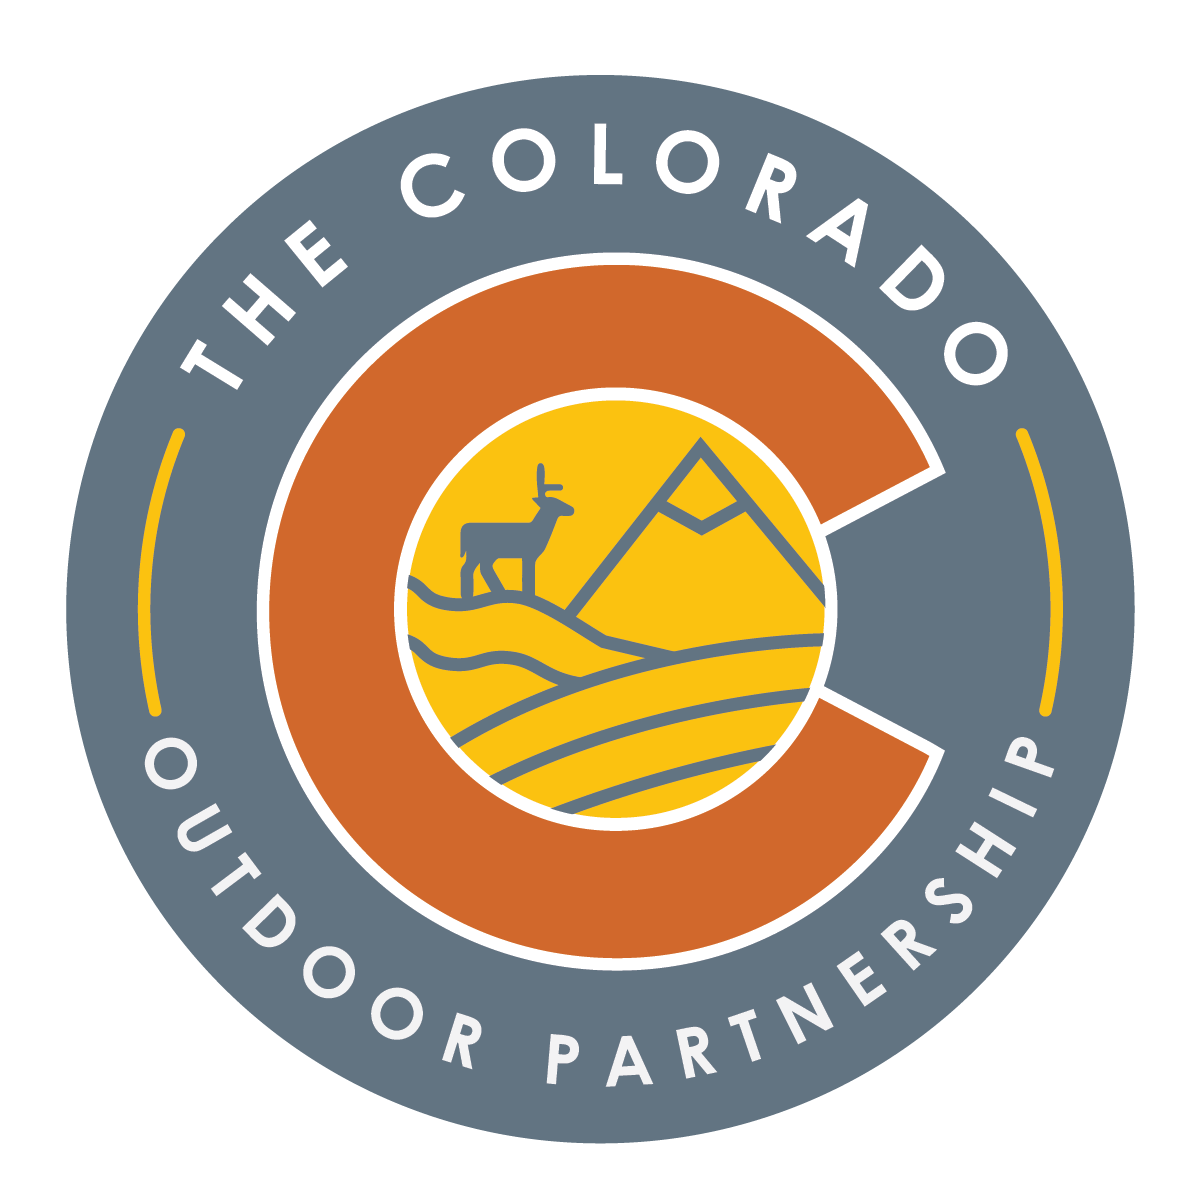 The Colorado Outdoor Partnership